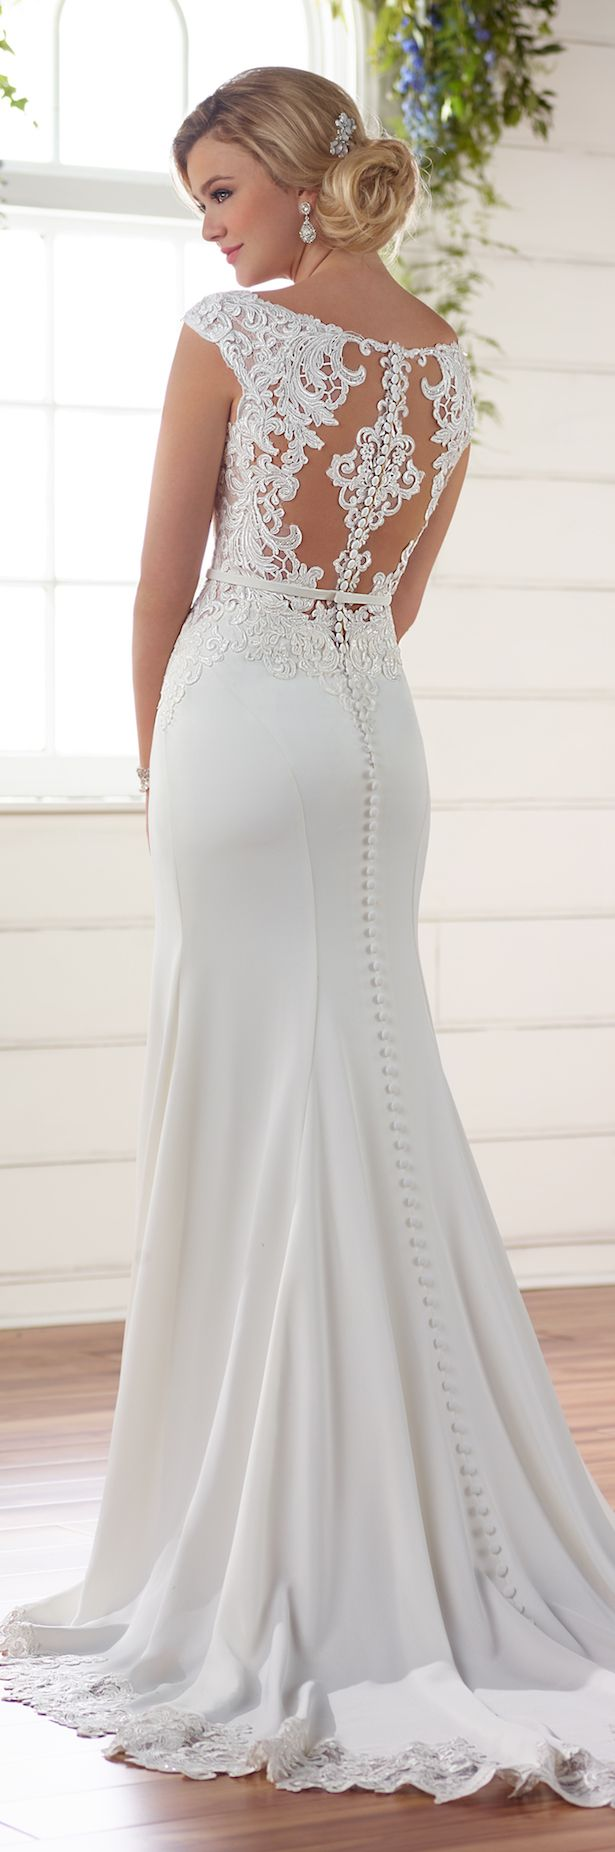 wedding dresses australia wedding dressing Essense of Australia Spring Bridal Collection